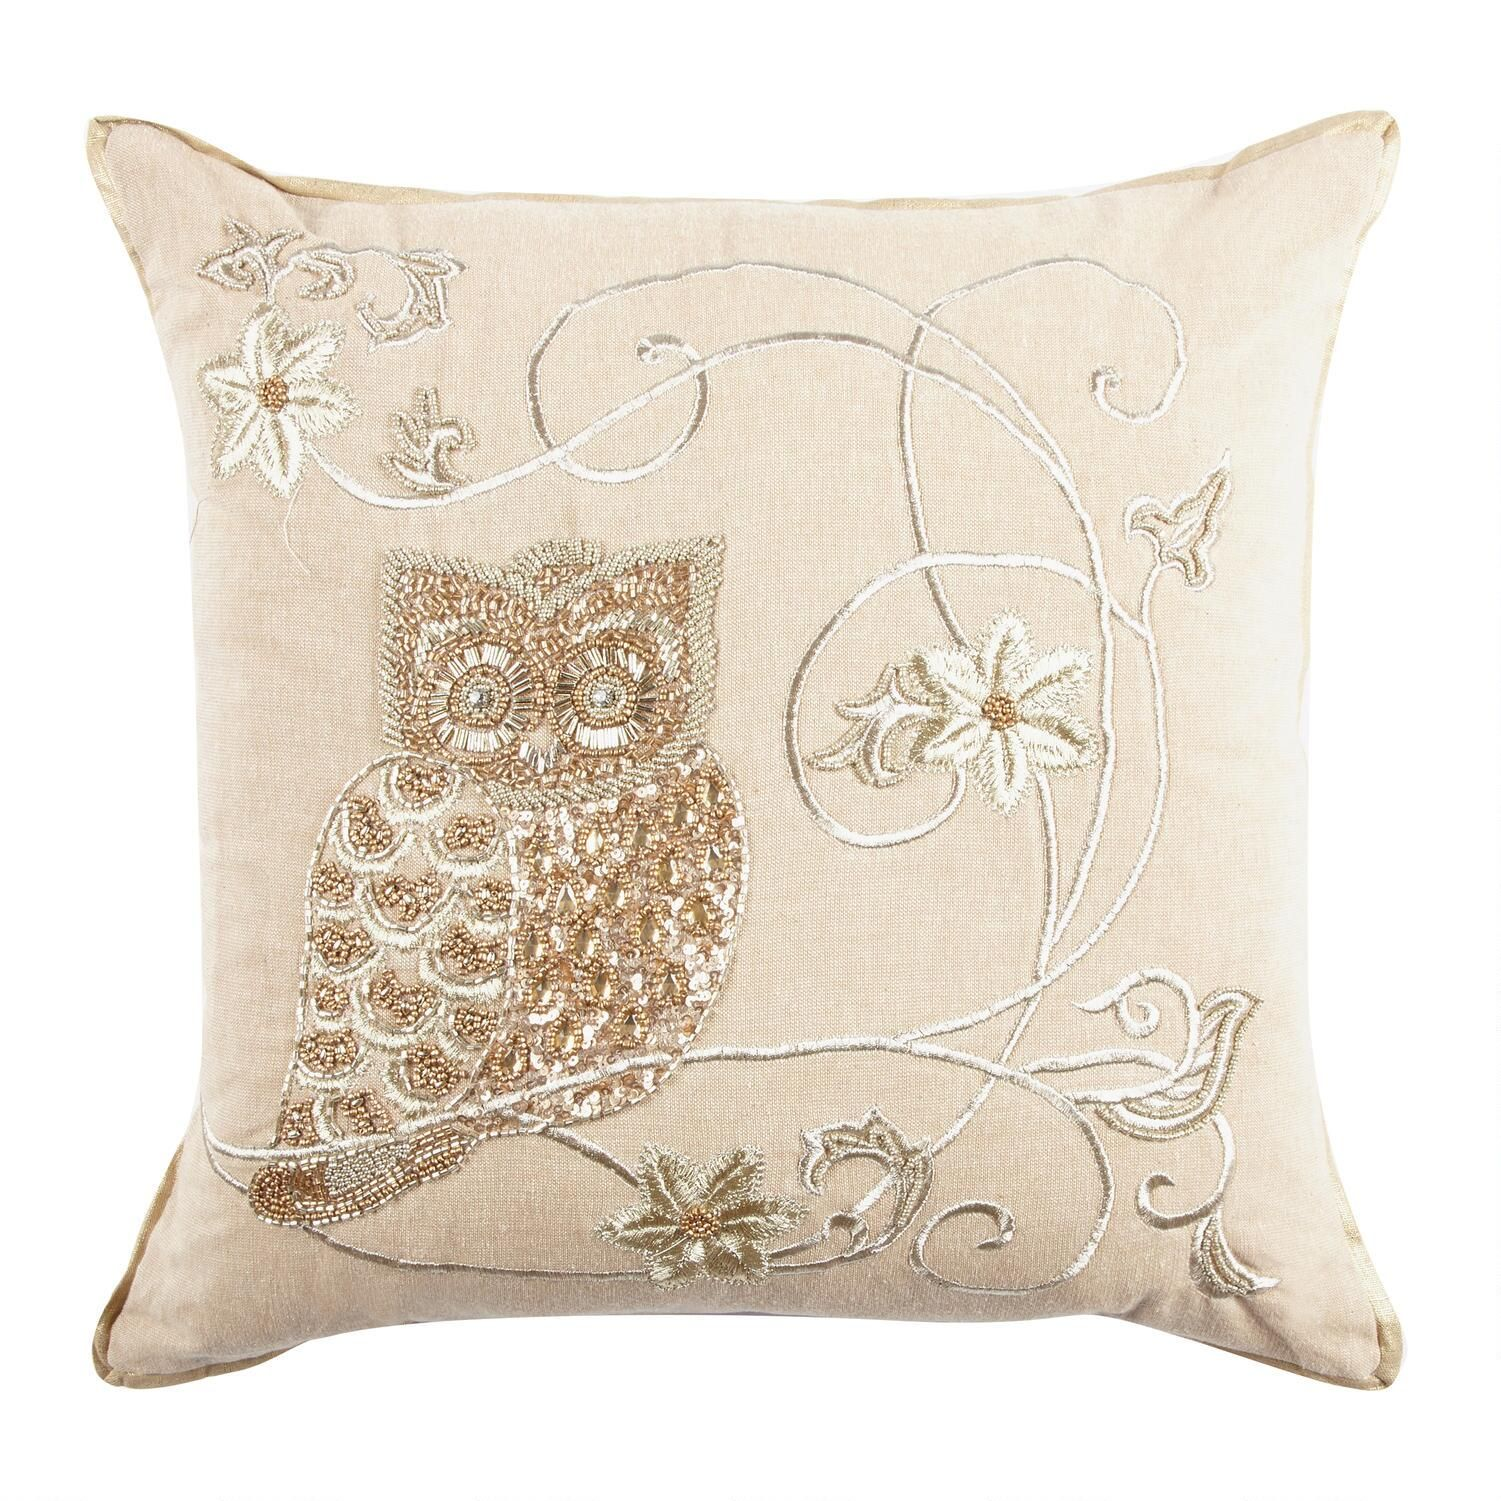 One Of My Favorite Discoveries At Christmastreeshops Com Throw Pillows Christmas Throw Pillows Pillows